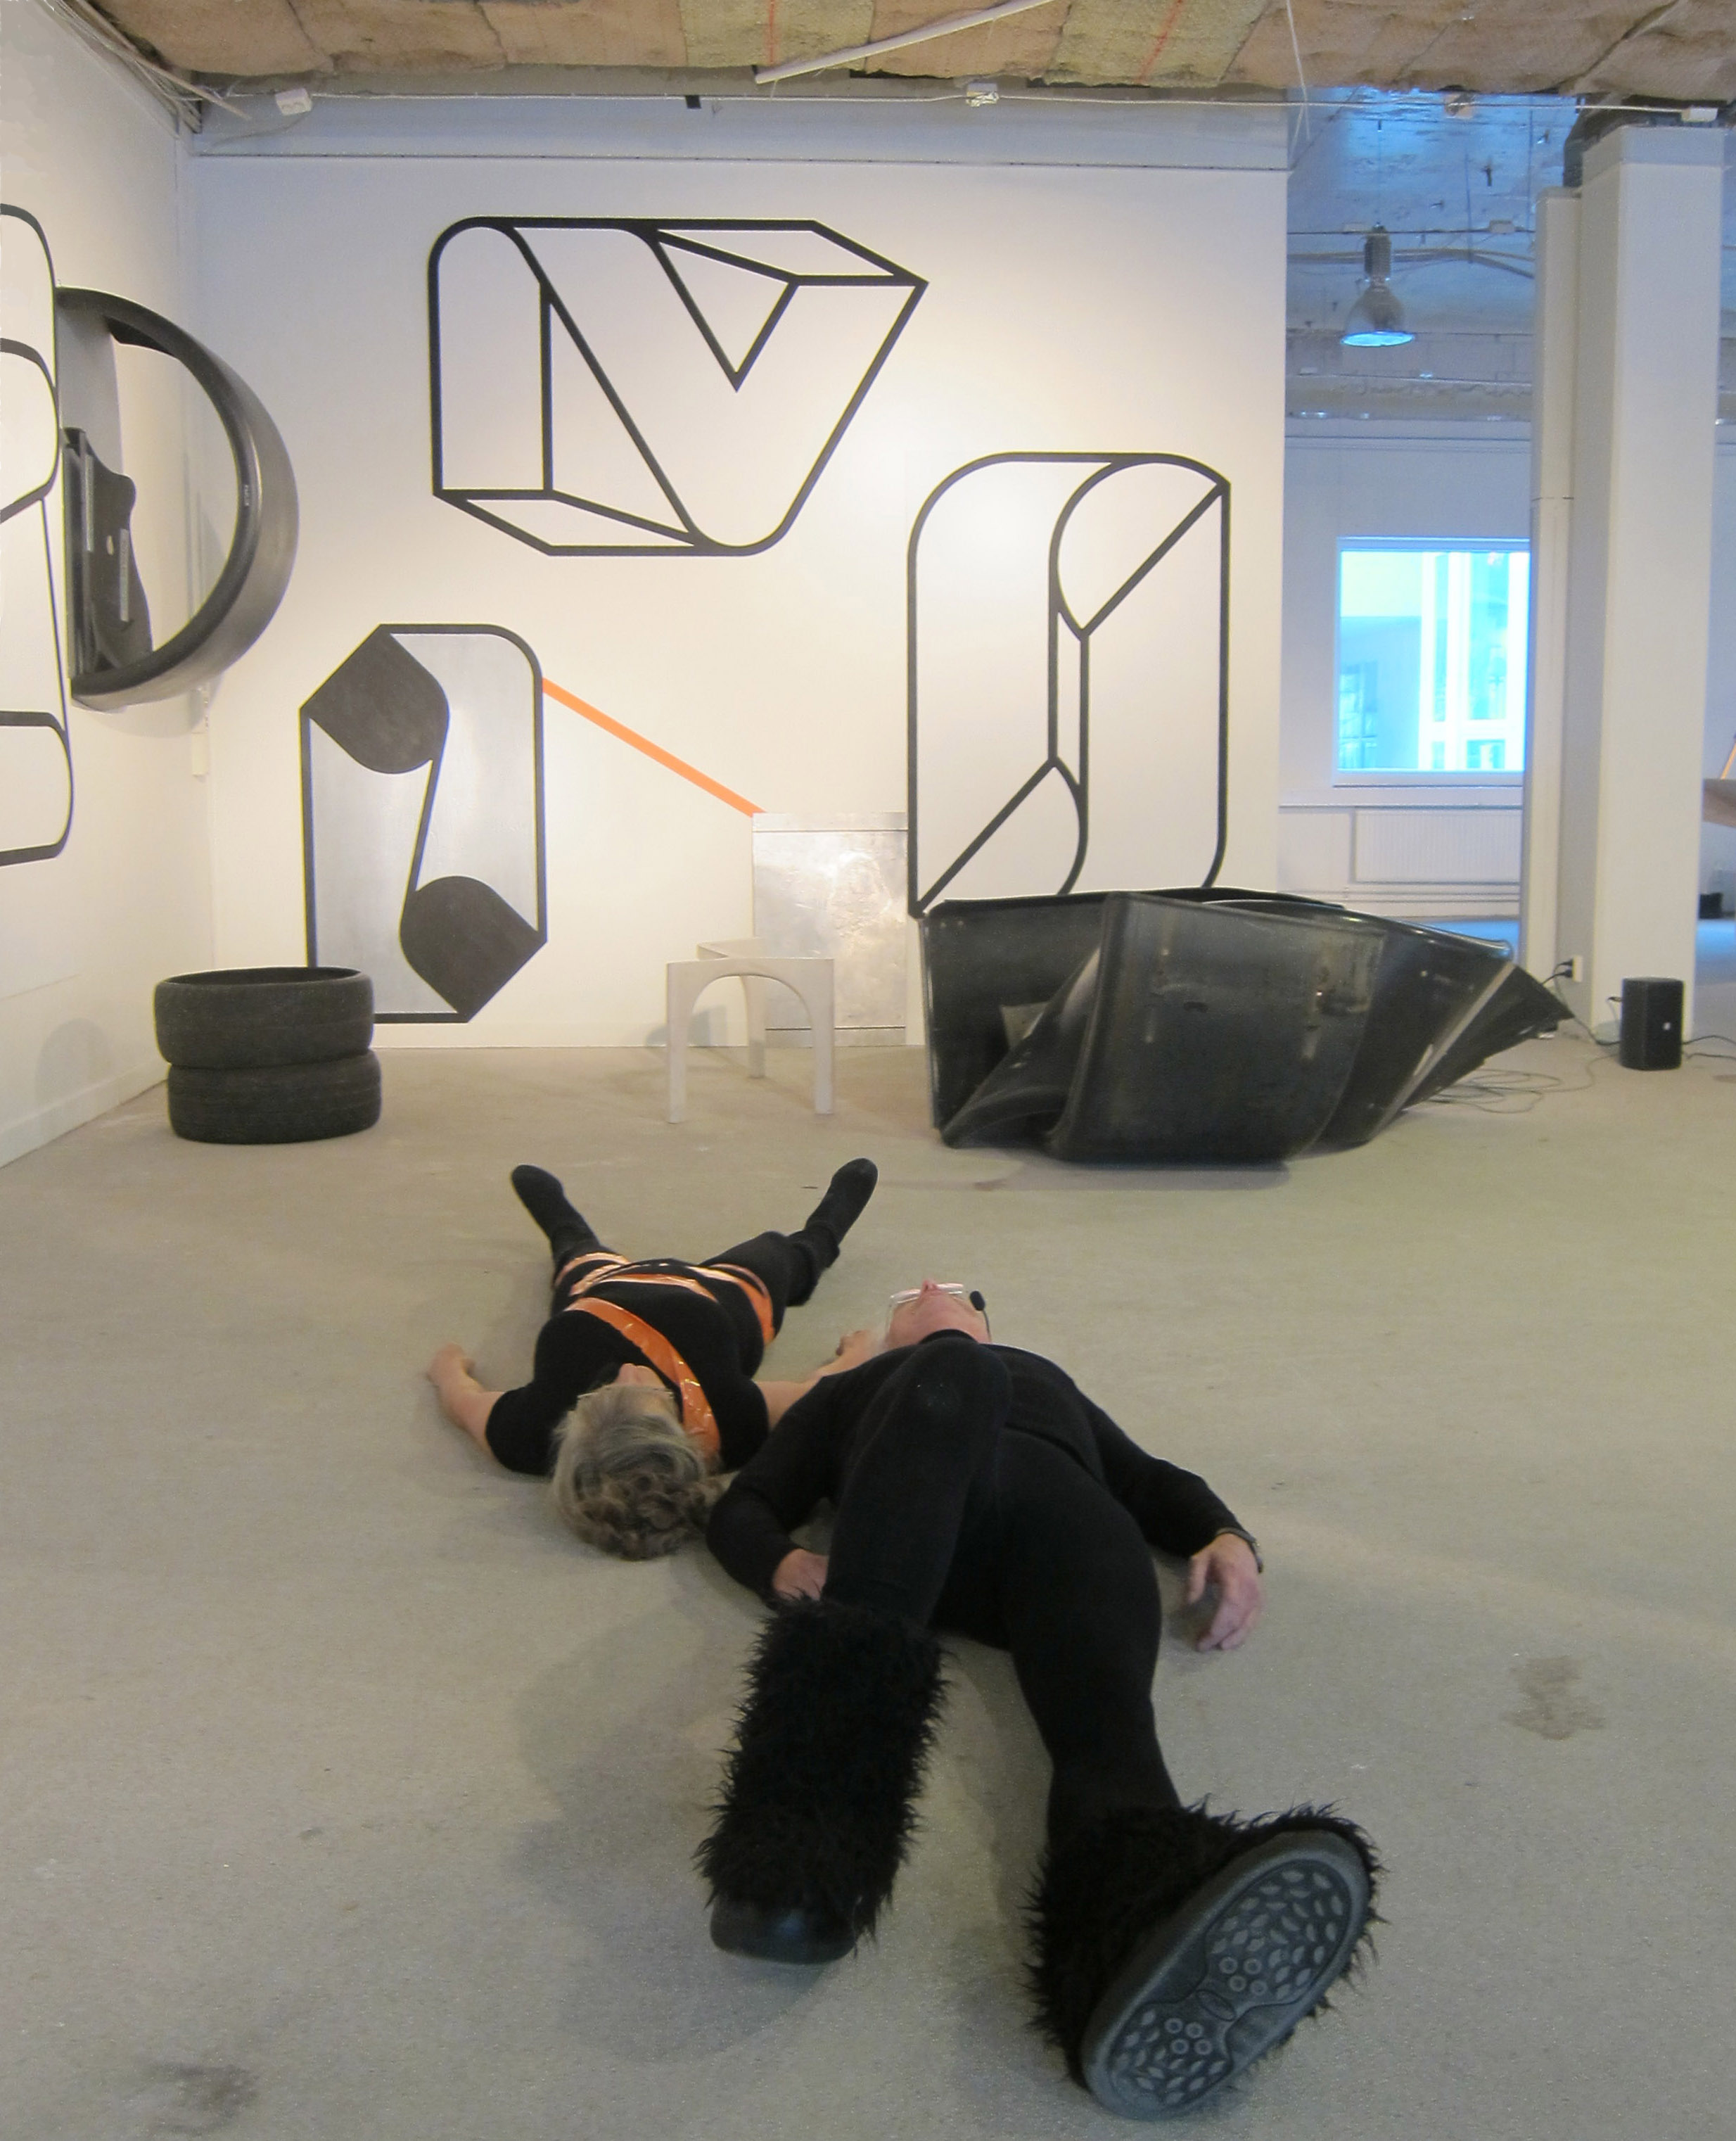 Performance in the exhibition UnTied Notions 2012